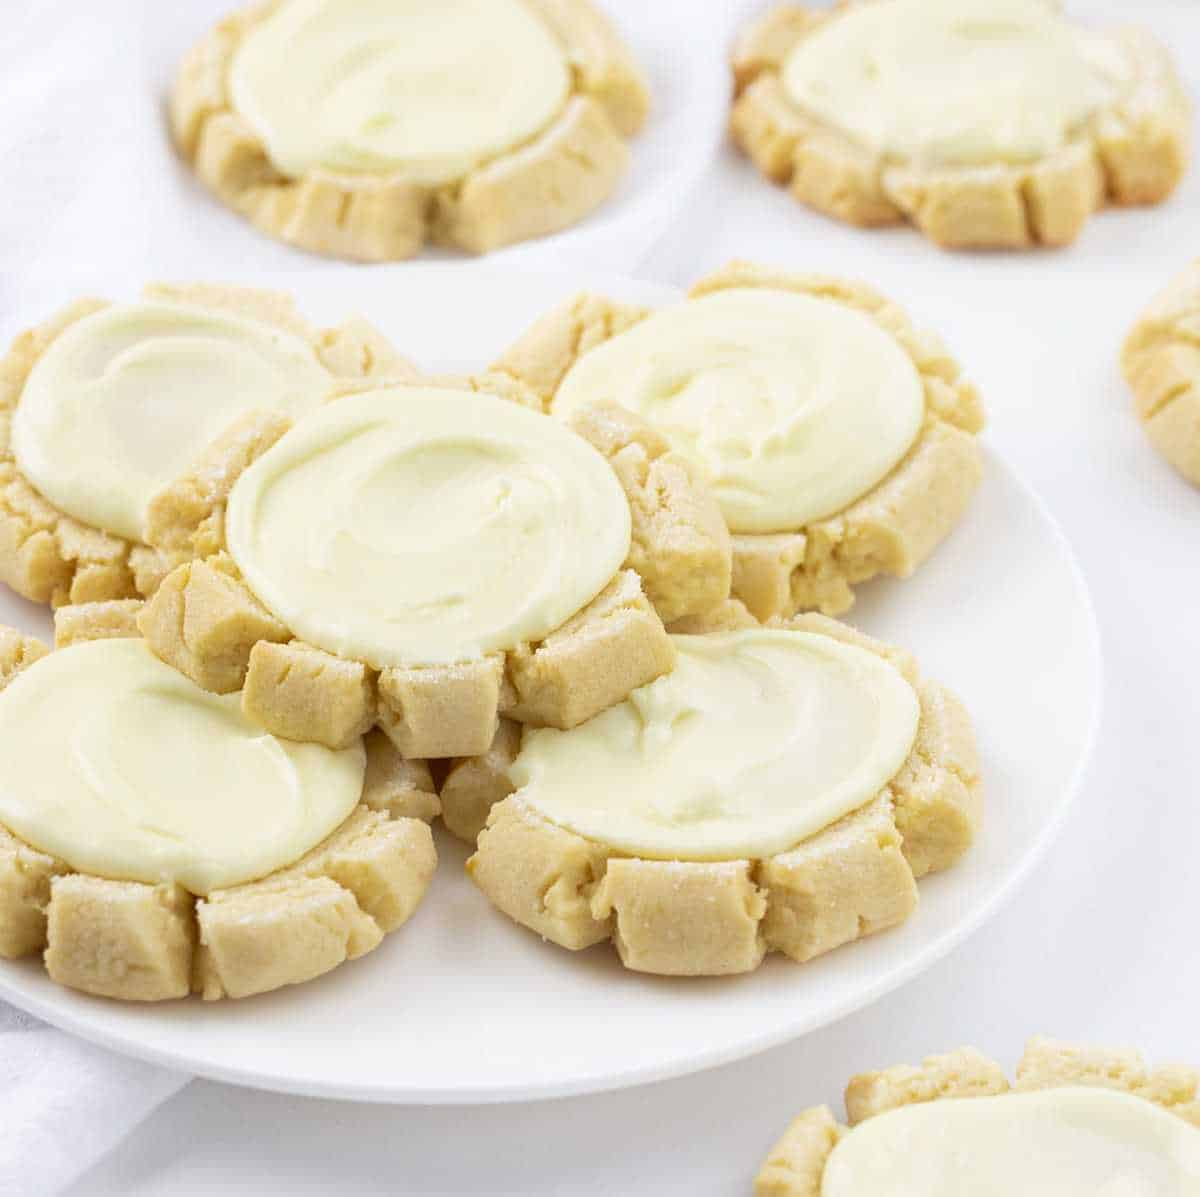 Lemon Sugar Cookies with Lemon Frosting on a White Plate with Cookies around